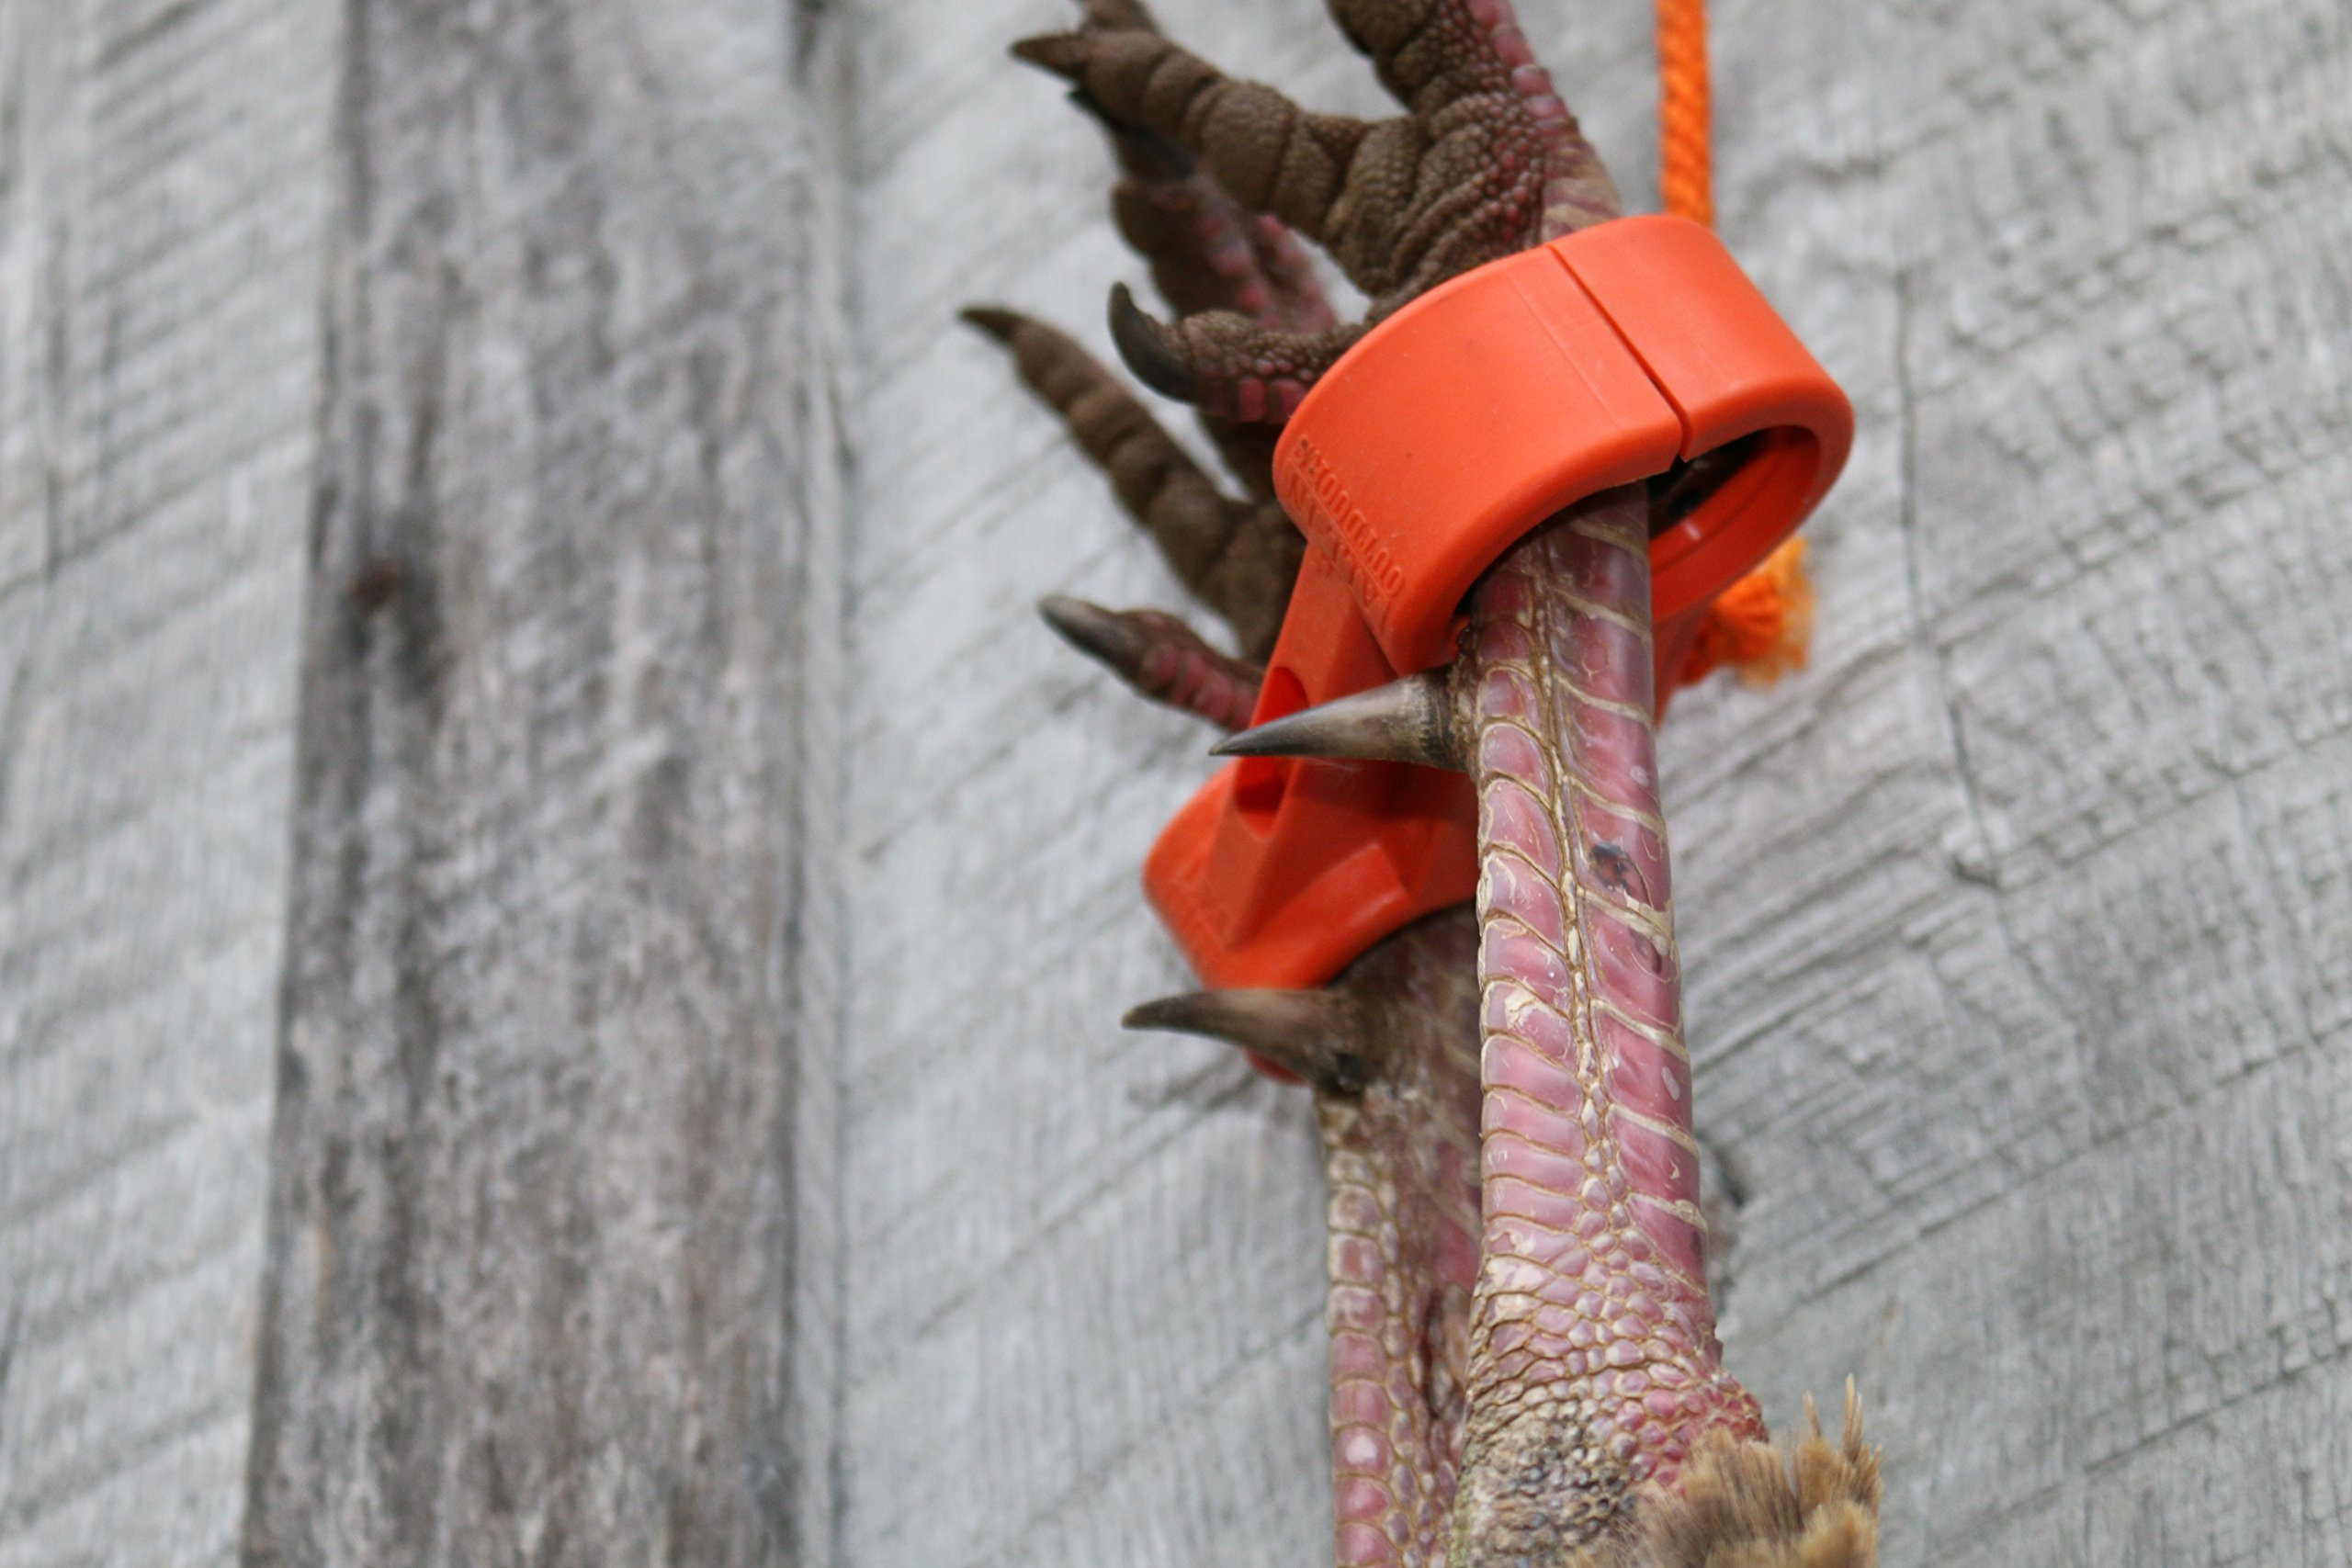 Leg Cuff Deer Drag & Turkey Tote Carrier Combination Hunting Tool by All - In Outdoors LLC (Image #1)